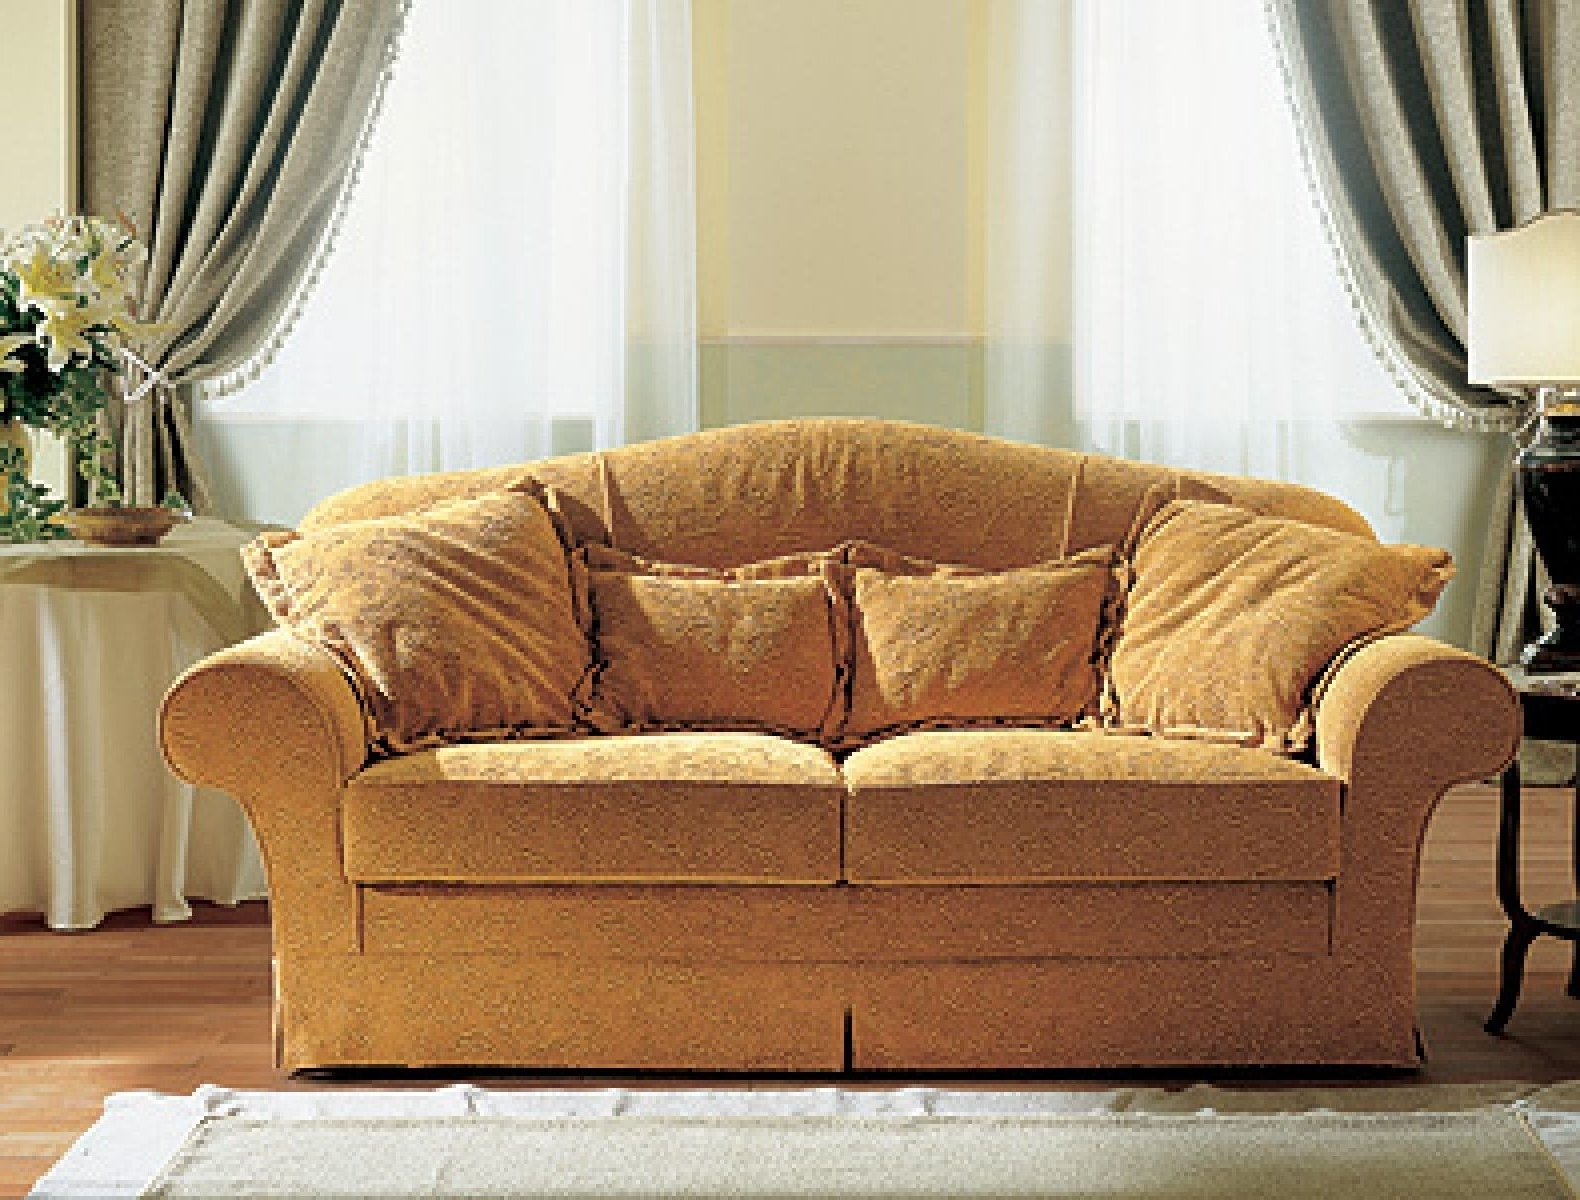 Well Known Elegant Traditional Sofas 70 For Your Office Sofa Ideas With With Traditional Sofas (View 9 of 20)